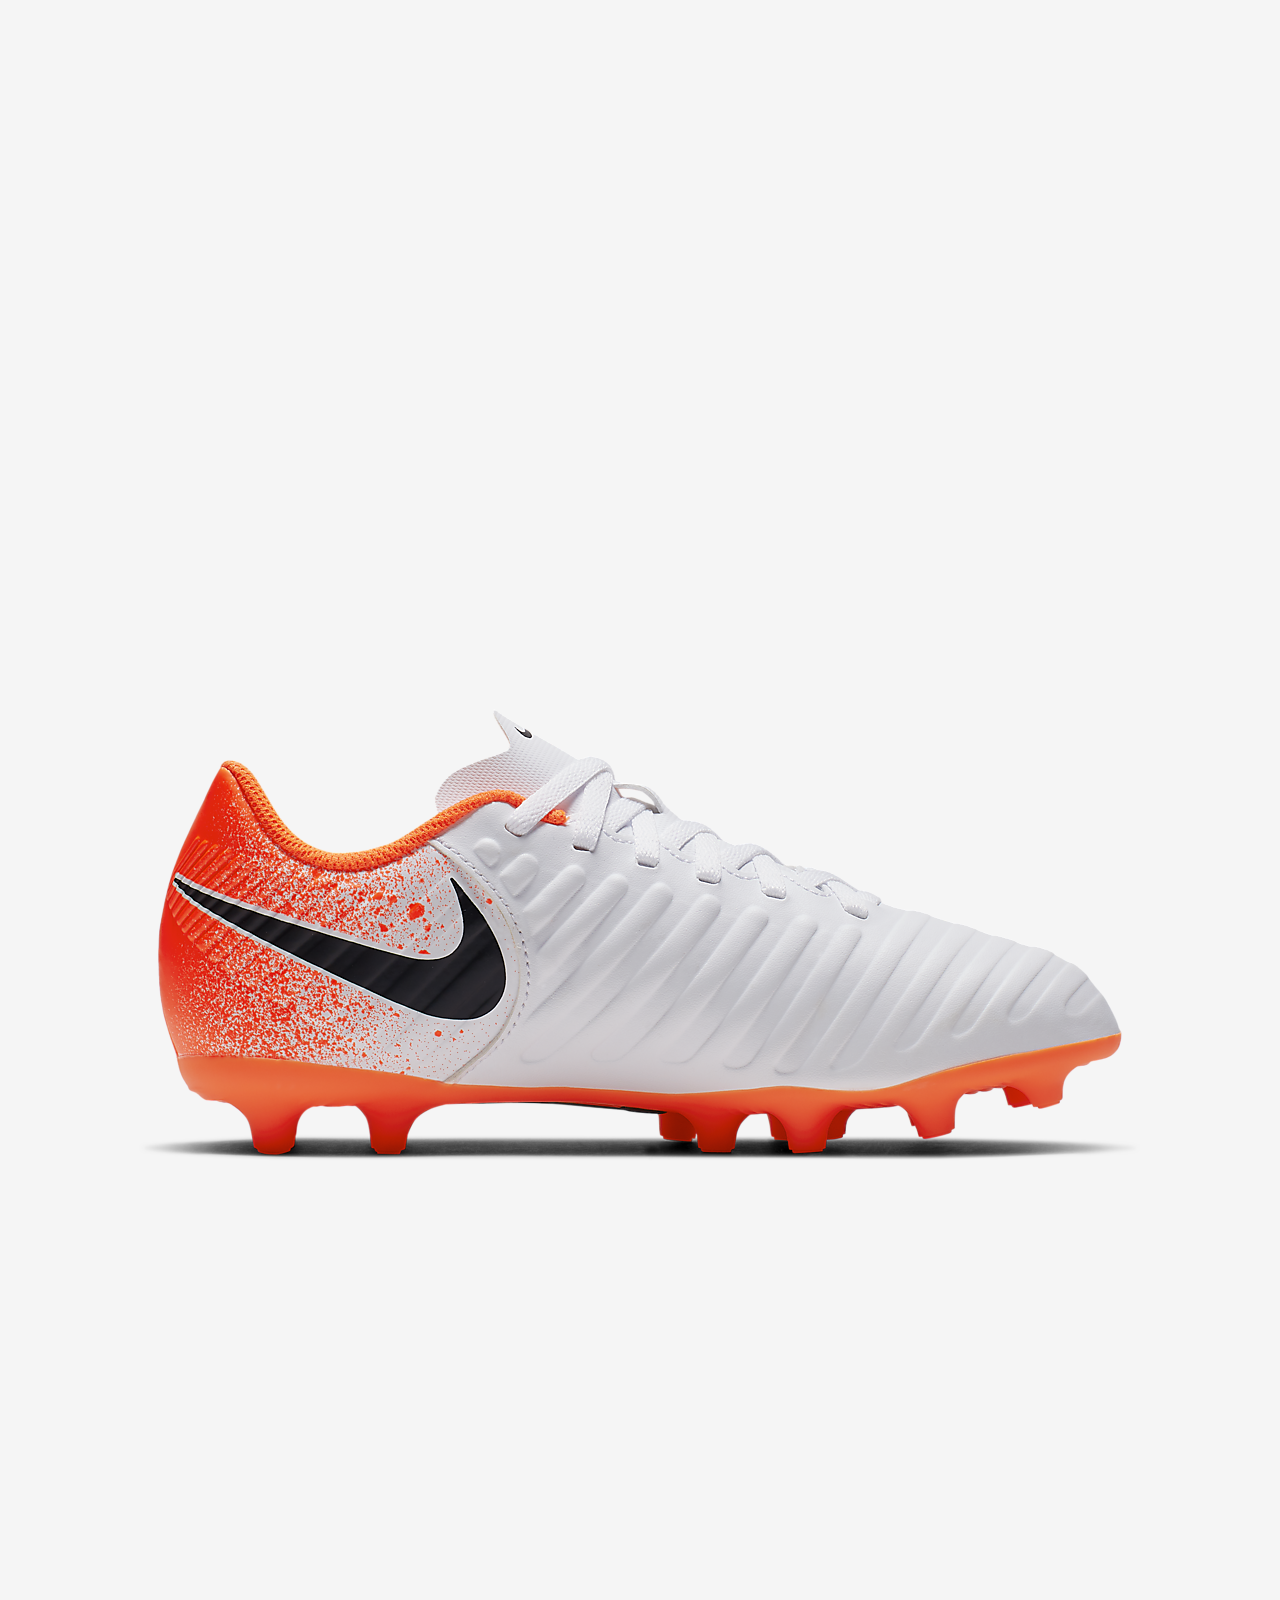 Football Schuhe Nike LEGEND 7 ACADEMY TF Orange ah7243 118